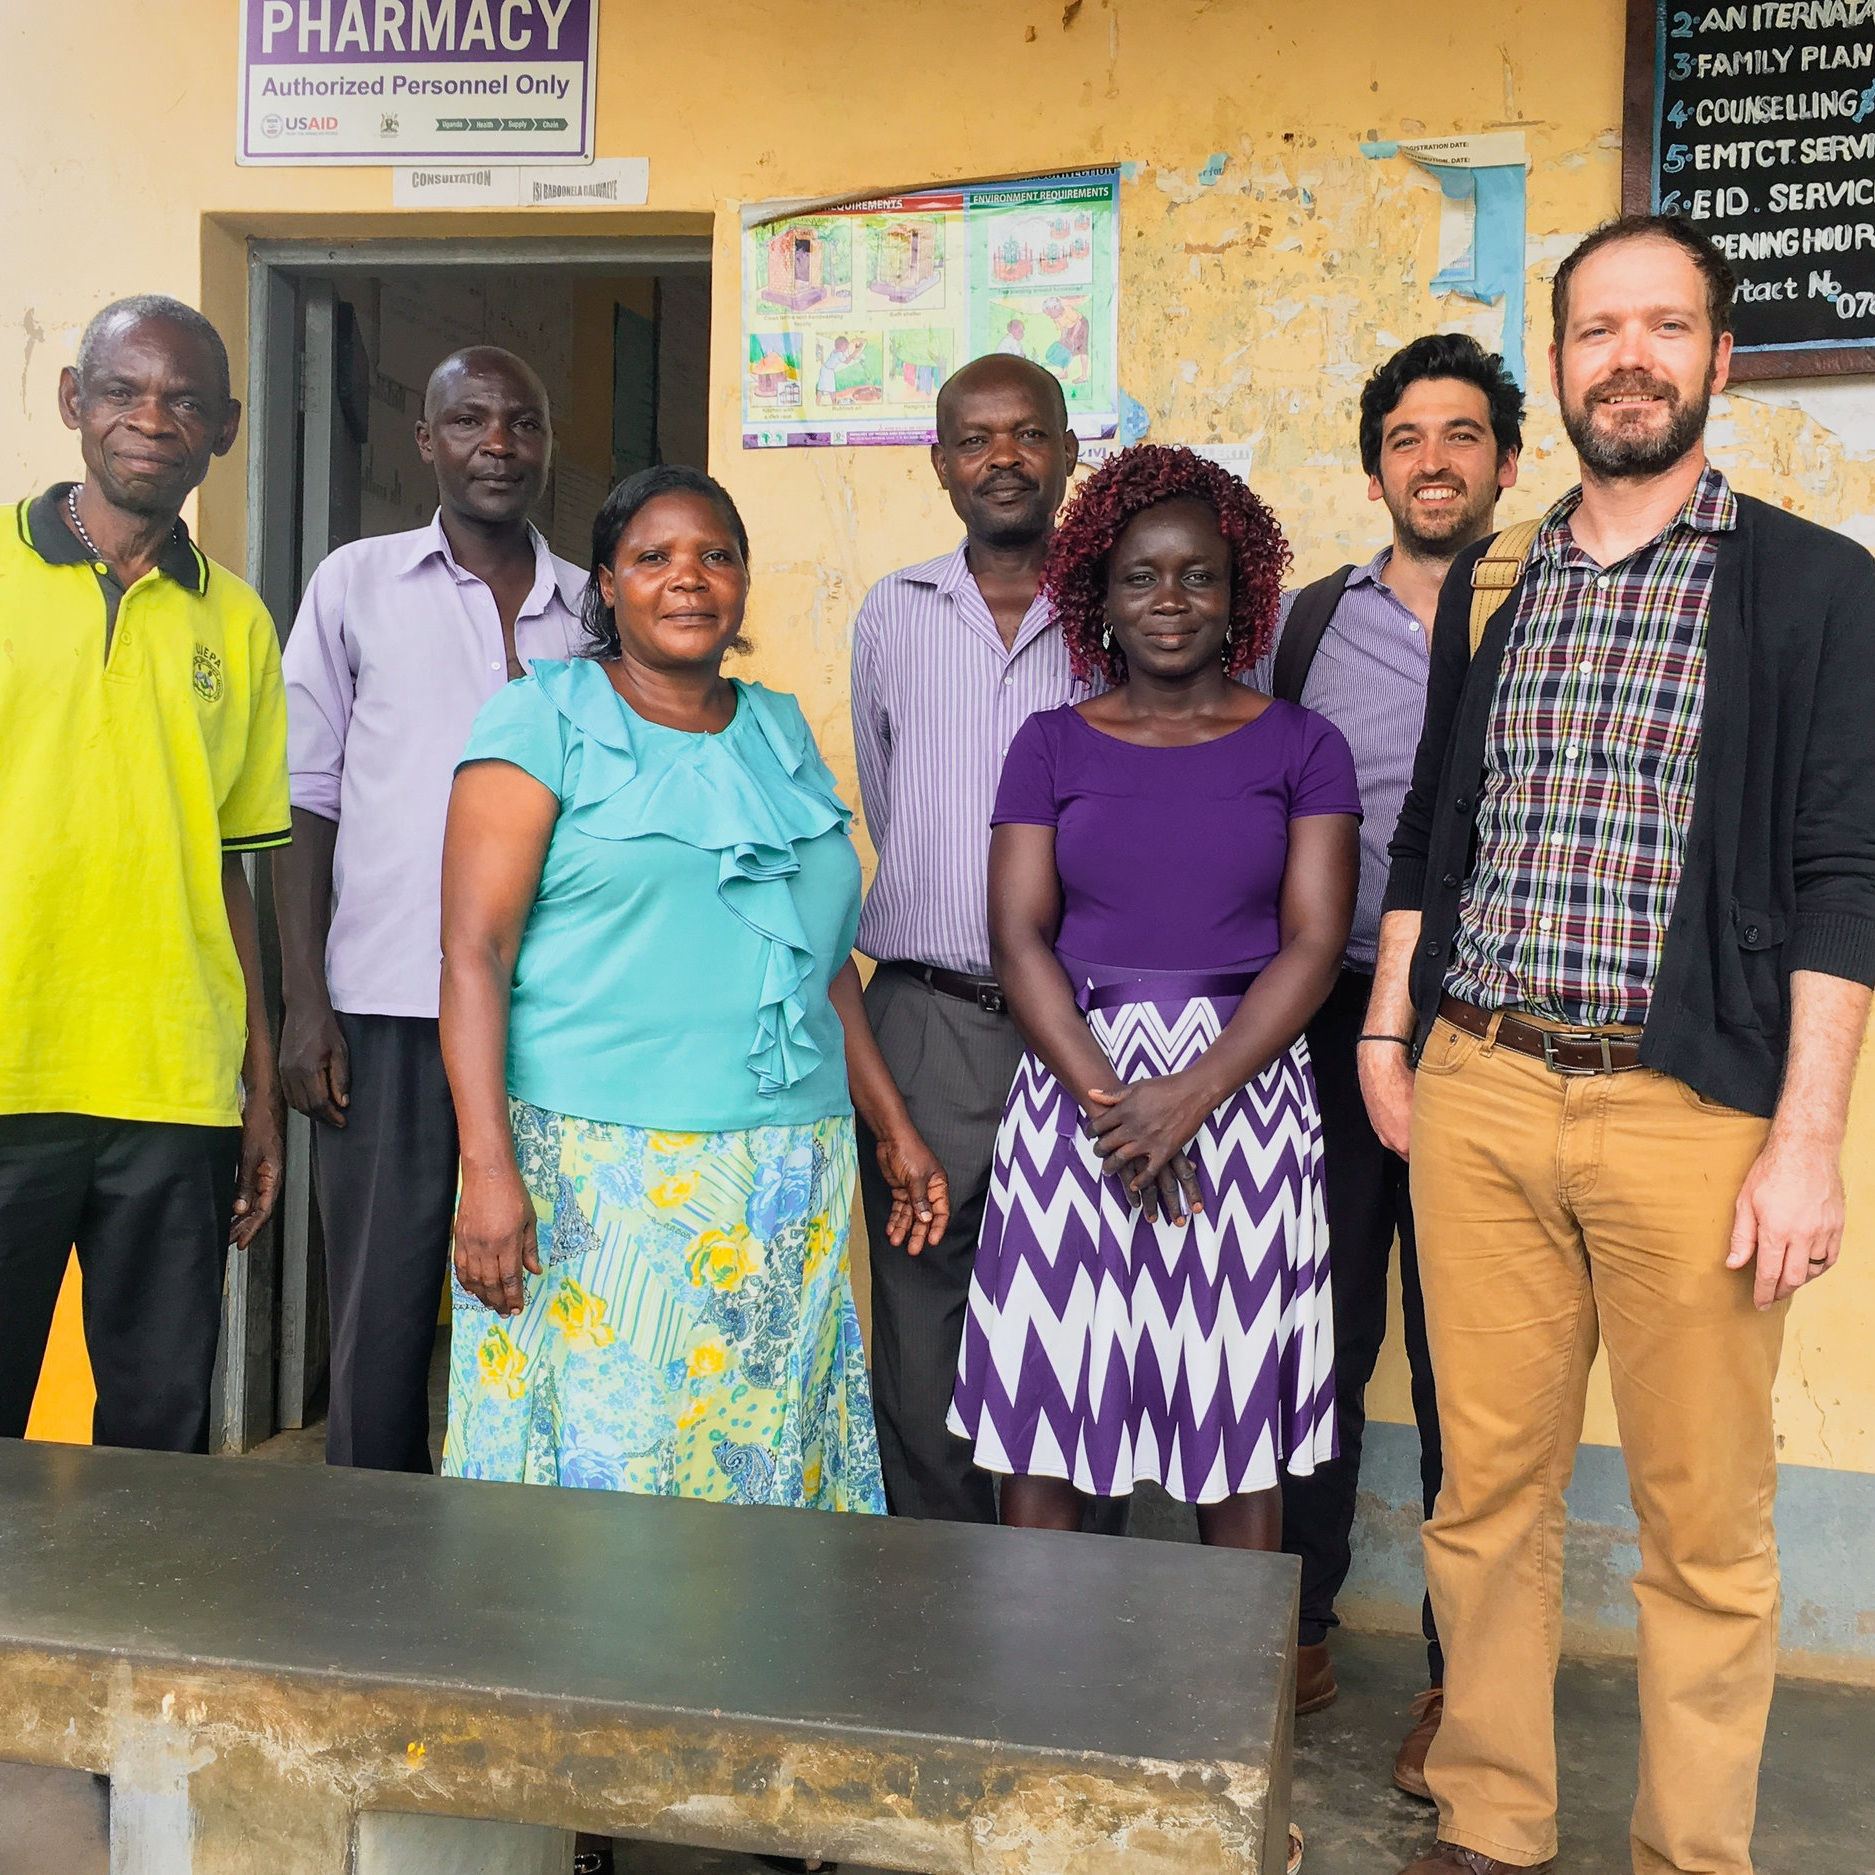 Our Mission. - Our mission is to create new health care economies through real-time information systems. Our S+ systems provide for the medical needs of health providers and their patients, in communities with scarce resources. This means more life for millions of people.Left: Nico and Bryan meet with a team of Health Providers in Mbale District, Uganda.